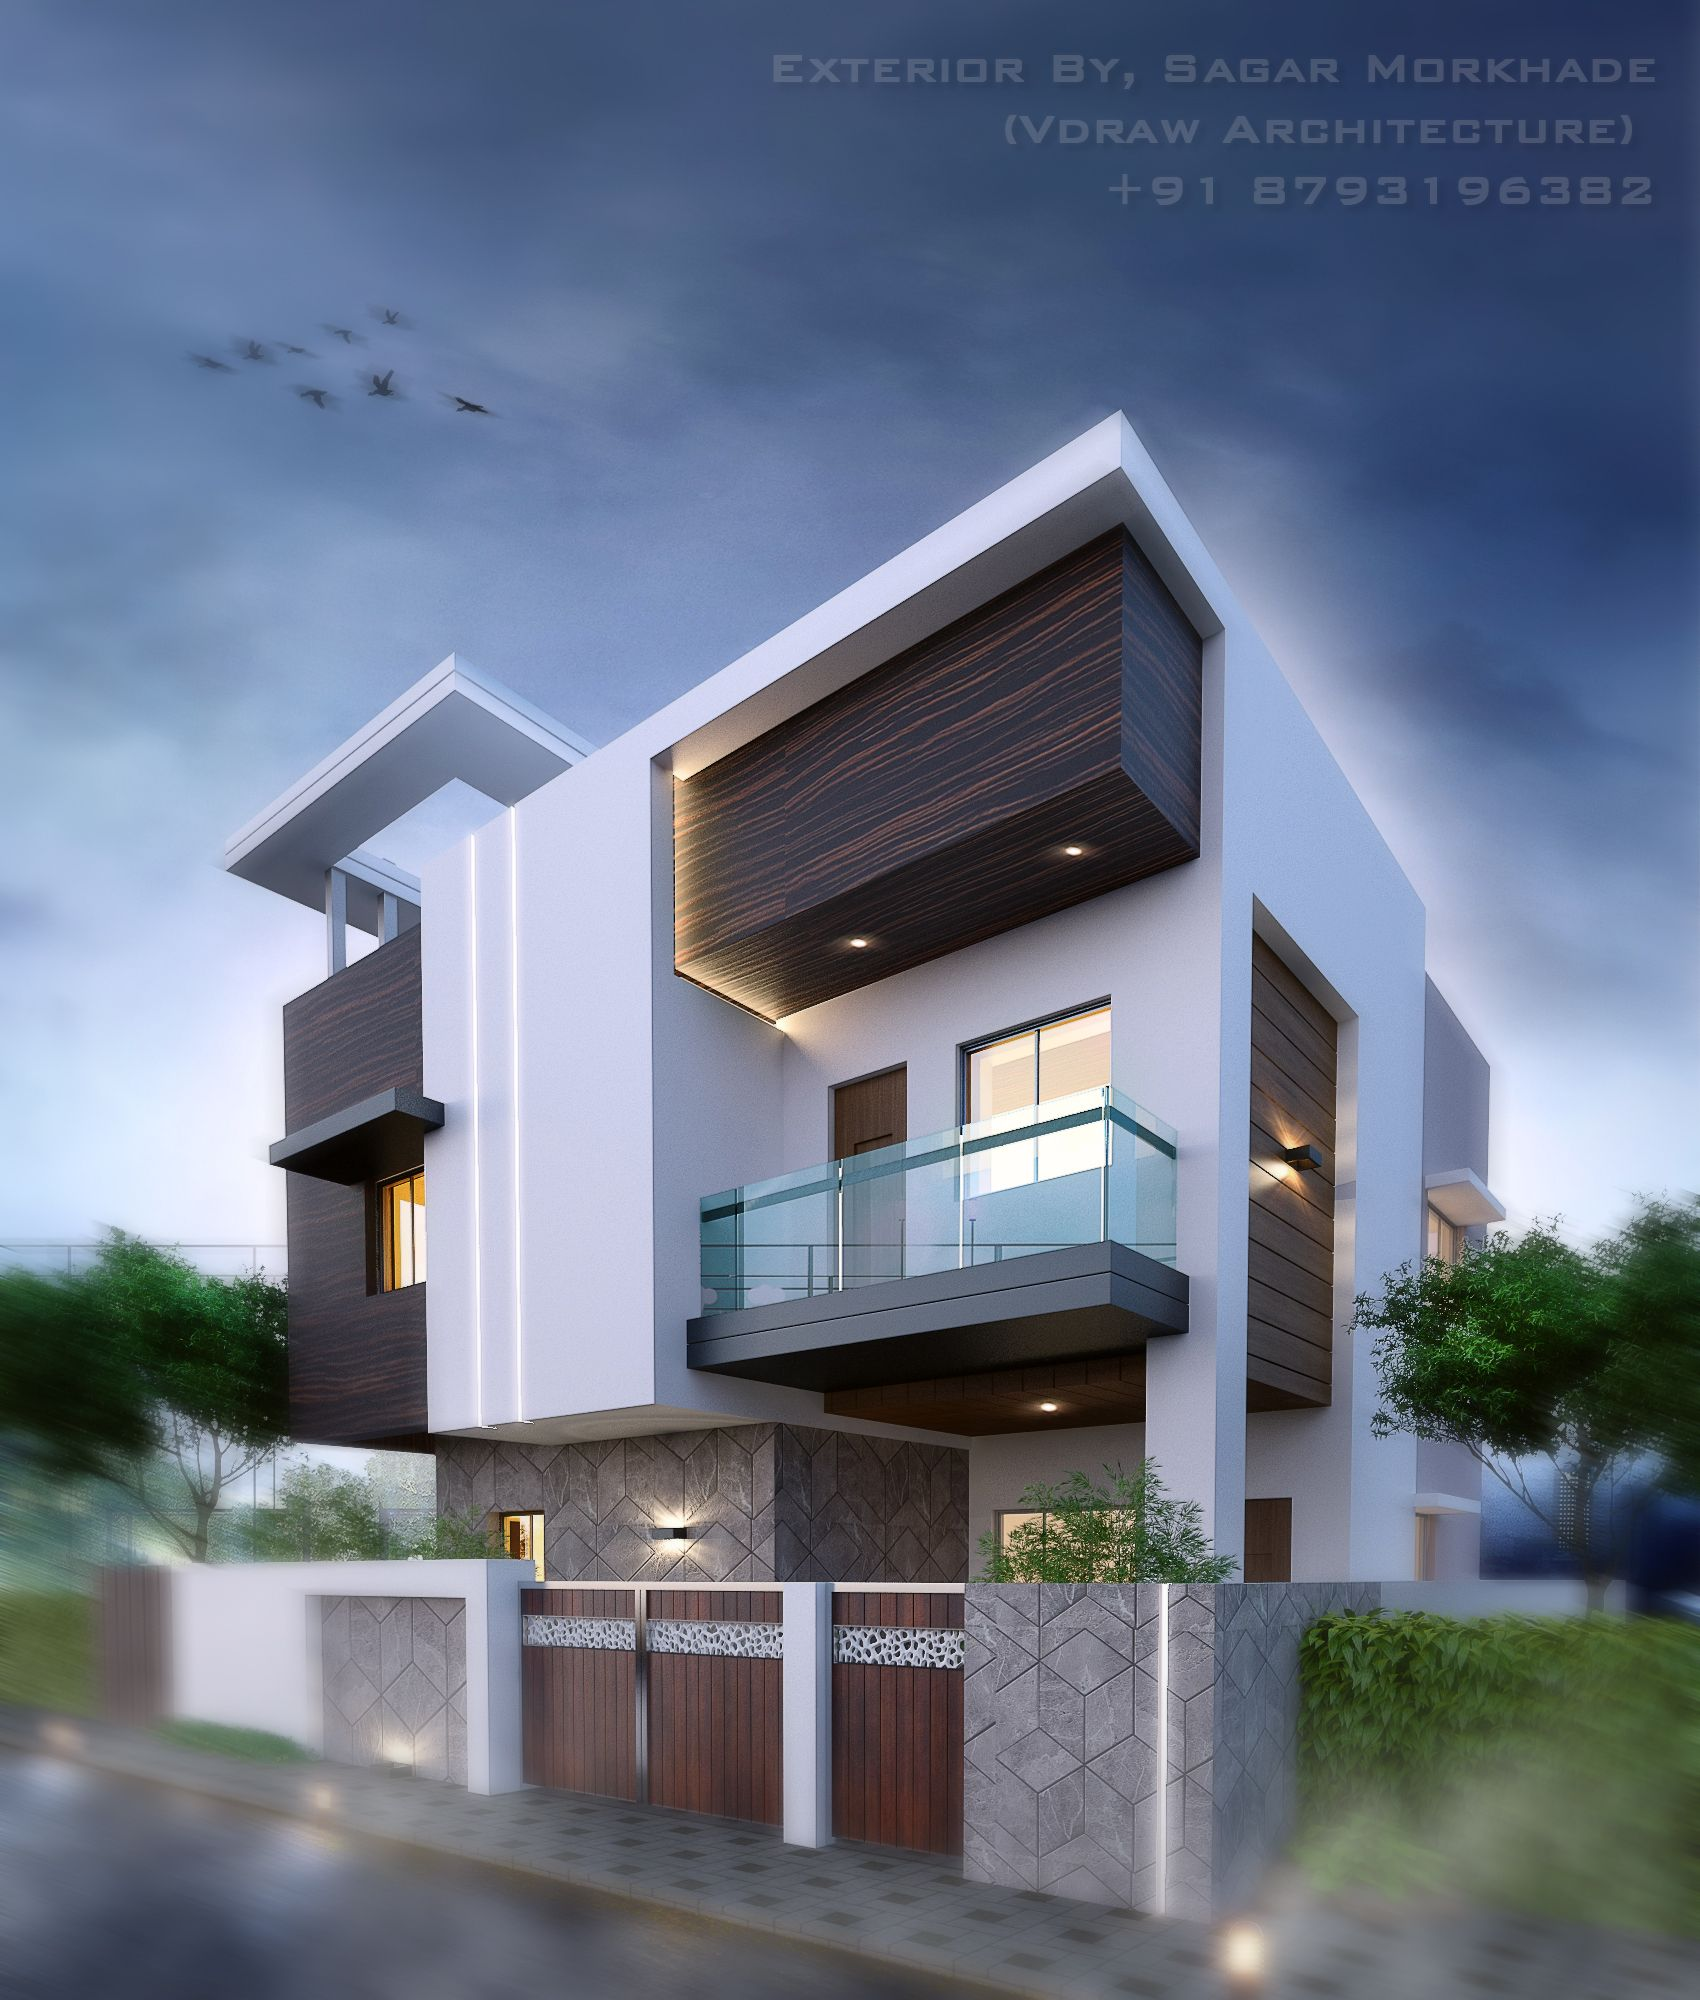 New Home Designs Latest Modern Homes Ultra Modern: Modern Bungalow Exterior By, Sagar Morkhade (Vdraw